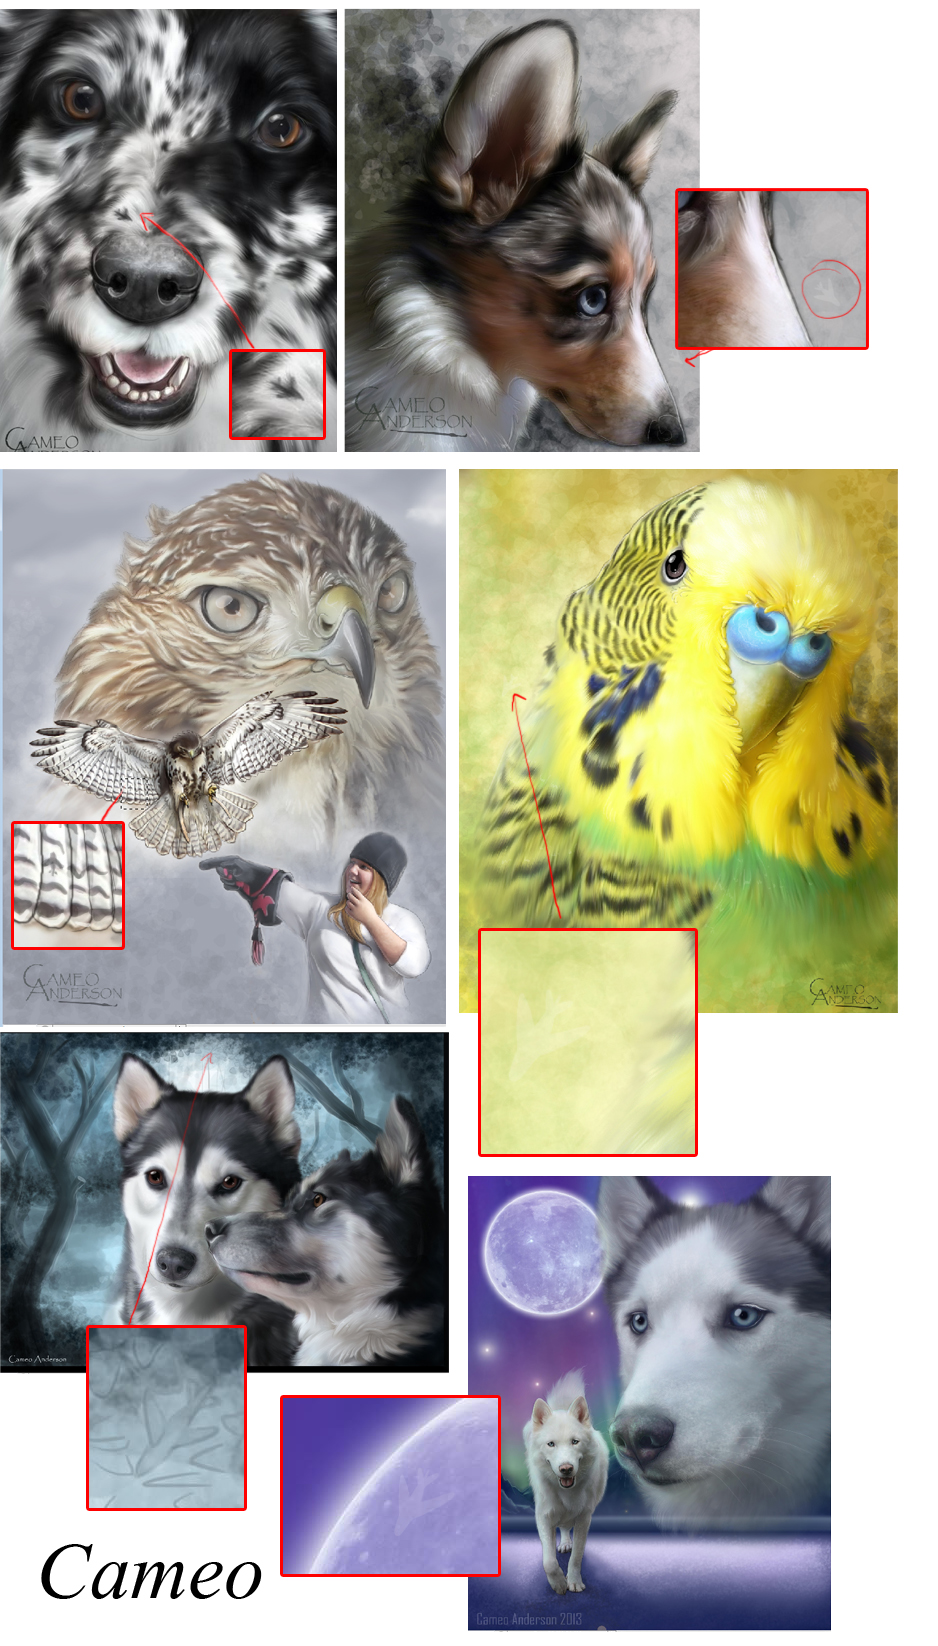 A graphic showing where Cameo hid some messages and images in pet portrait paintings.